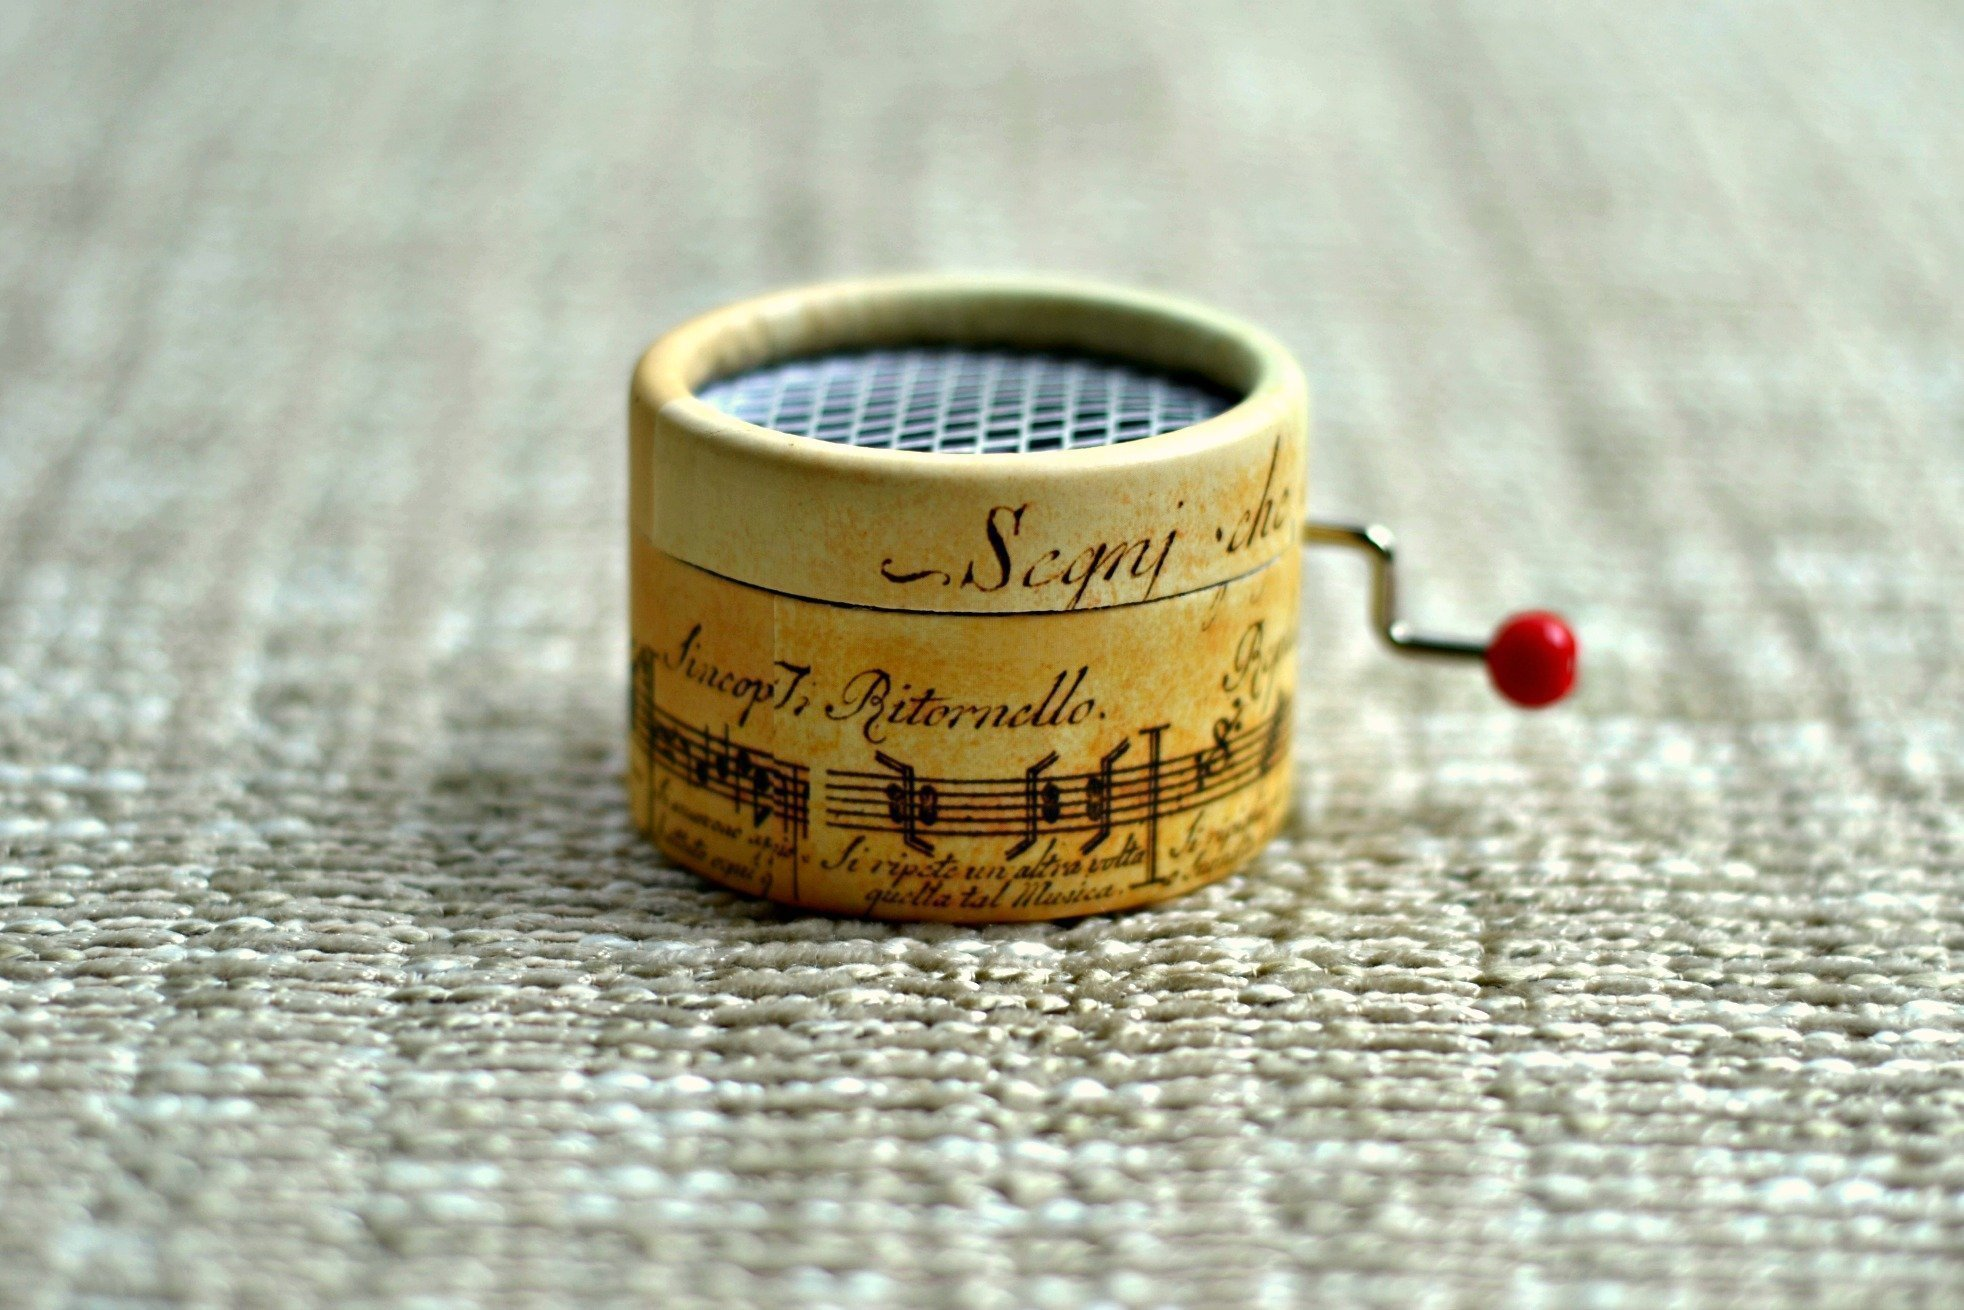 Musical cranked mechanism music lovers